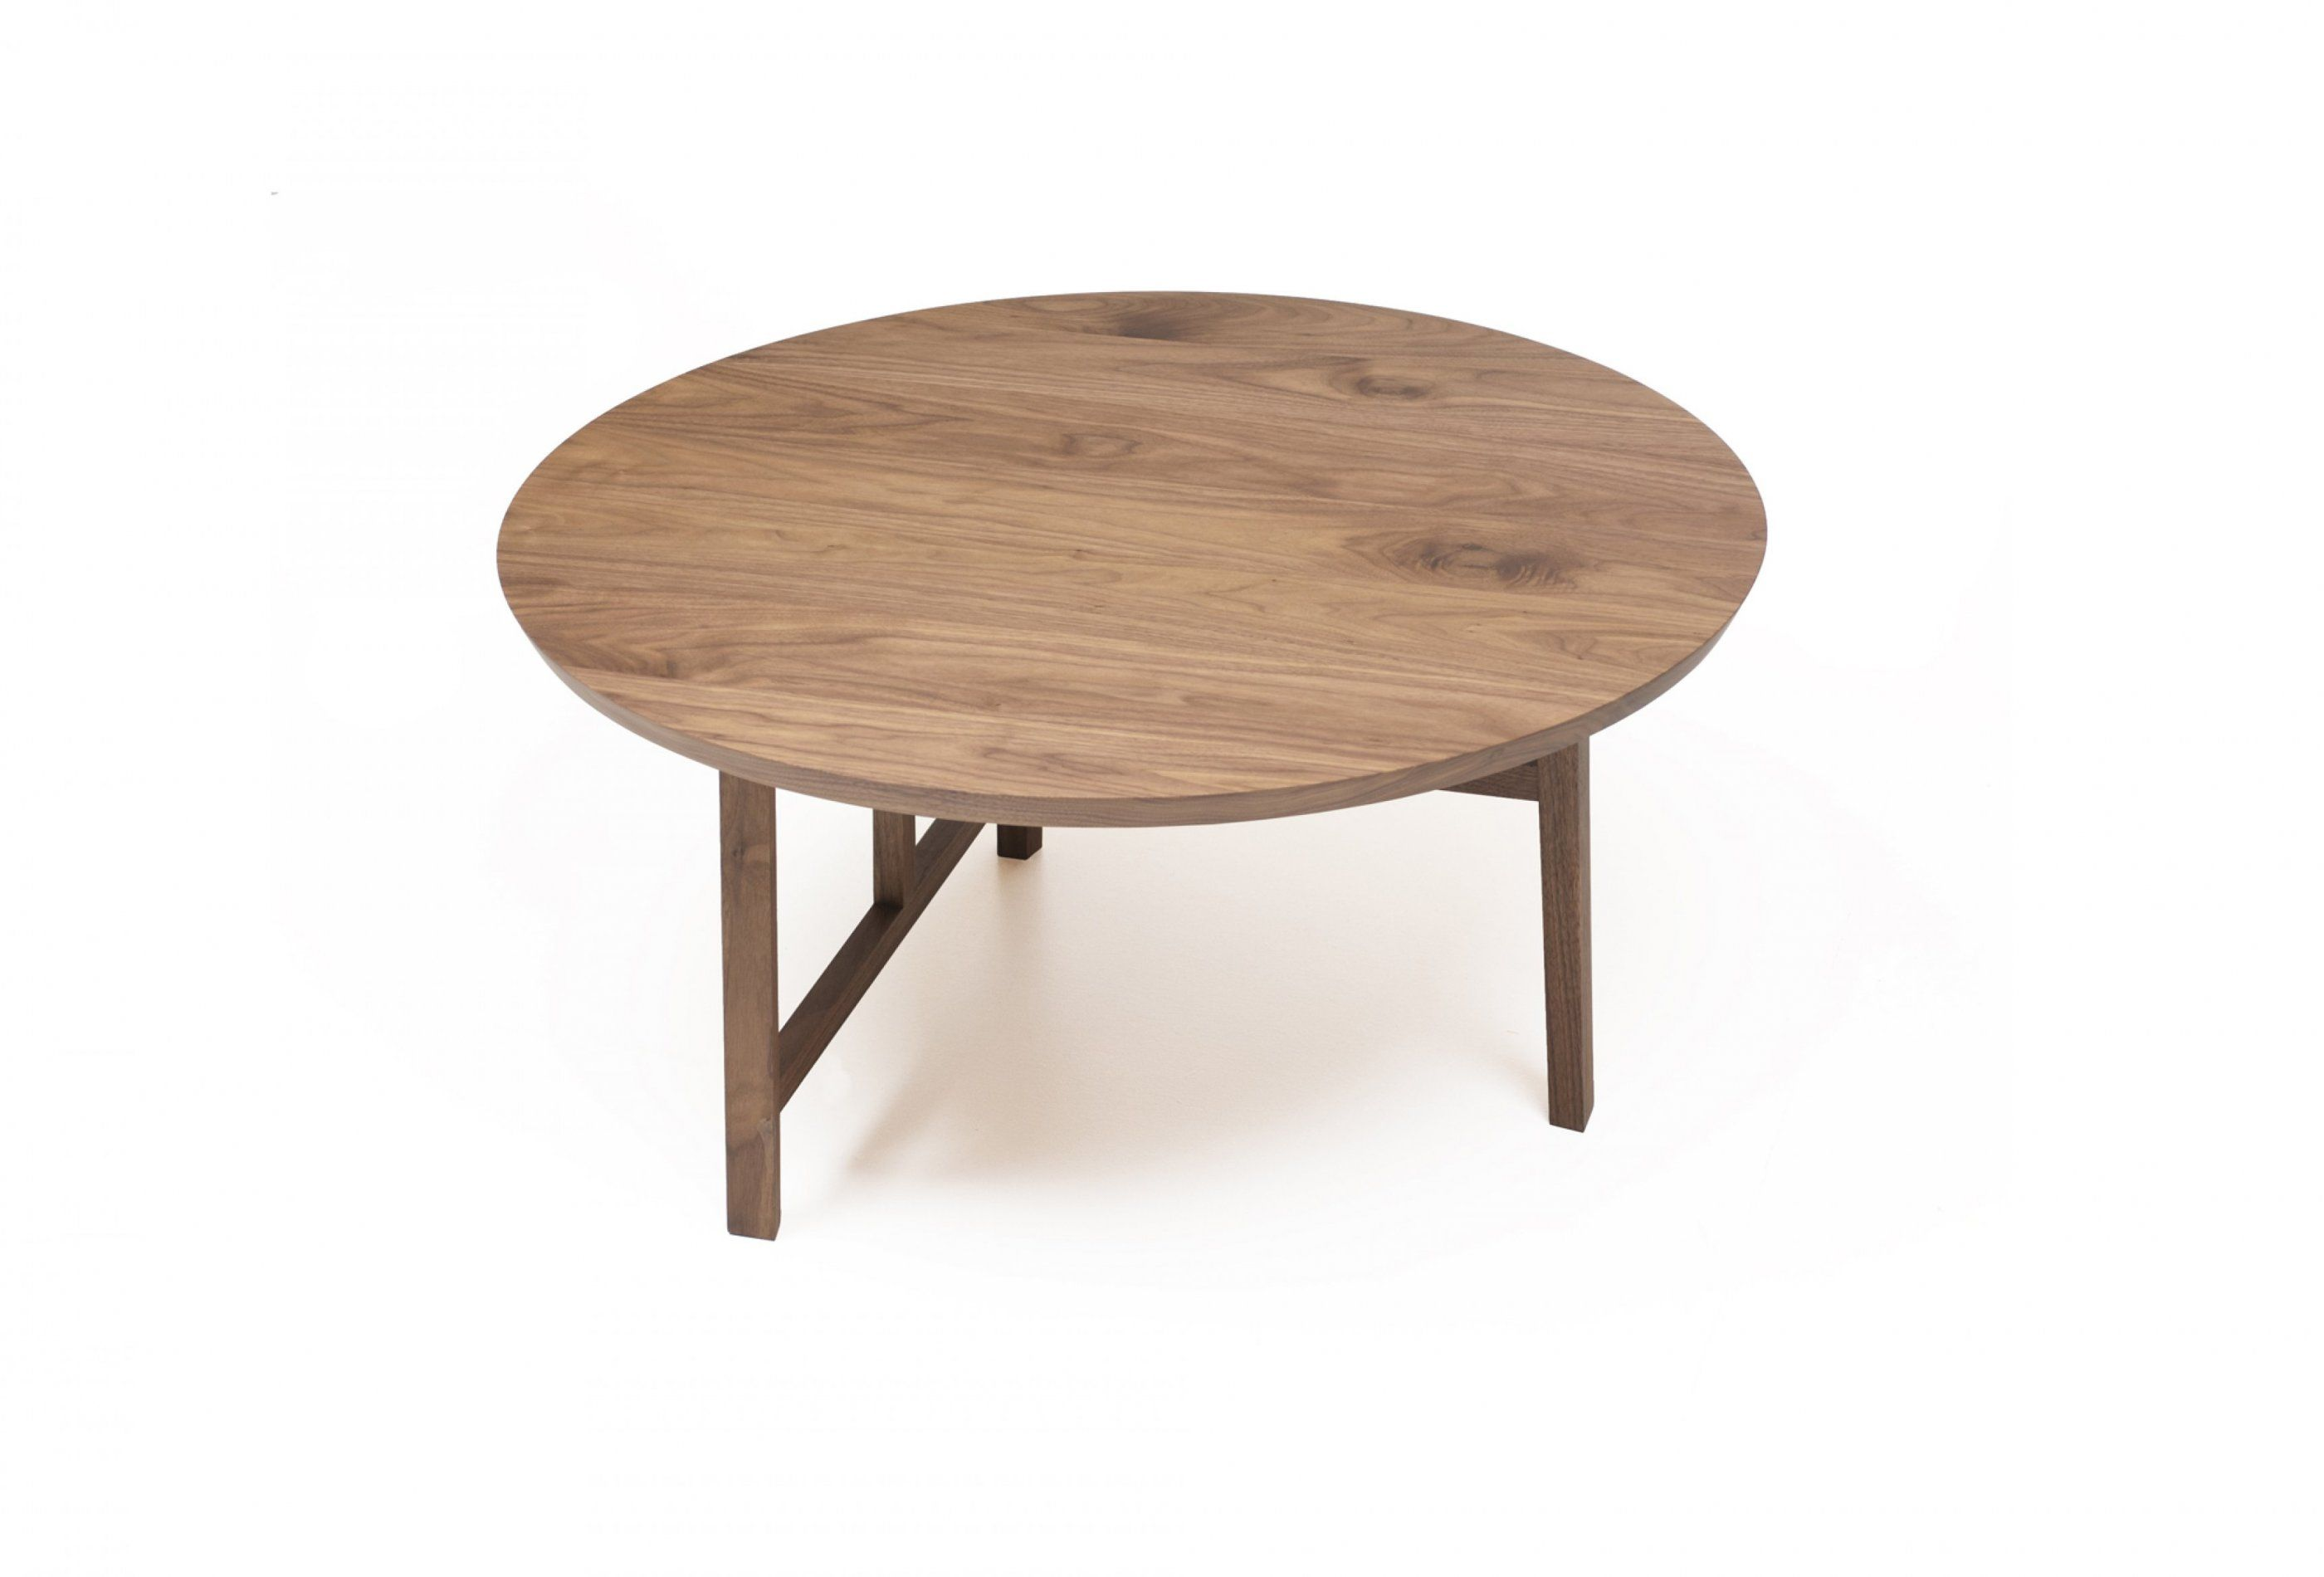 small round three leg table design ideas neelan accent neri trio coffee product furniture lighting designer tablecloths foldable ikea cherry wood farmhouse dining antique and end